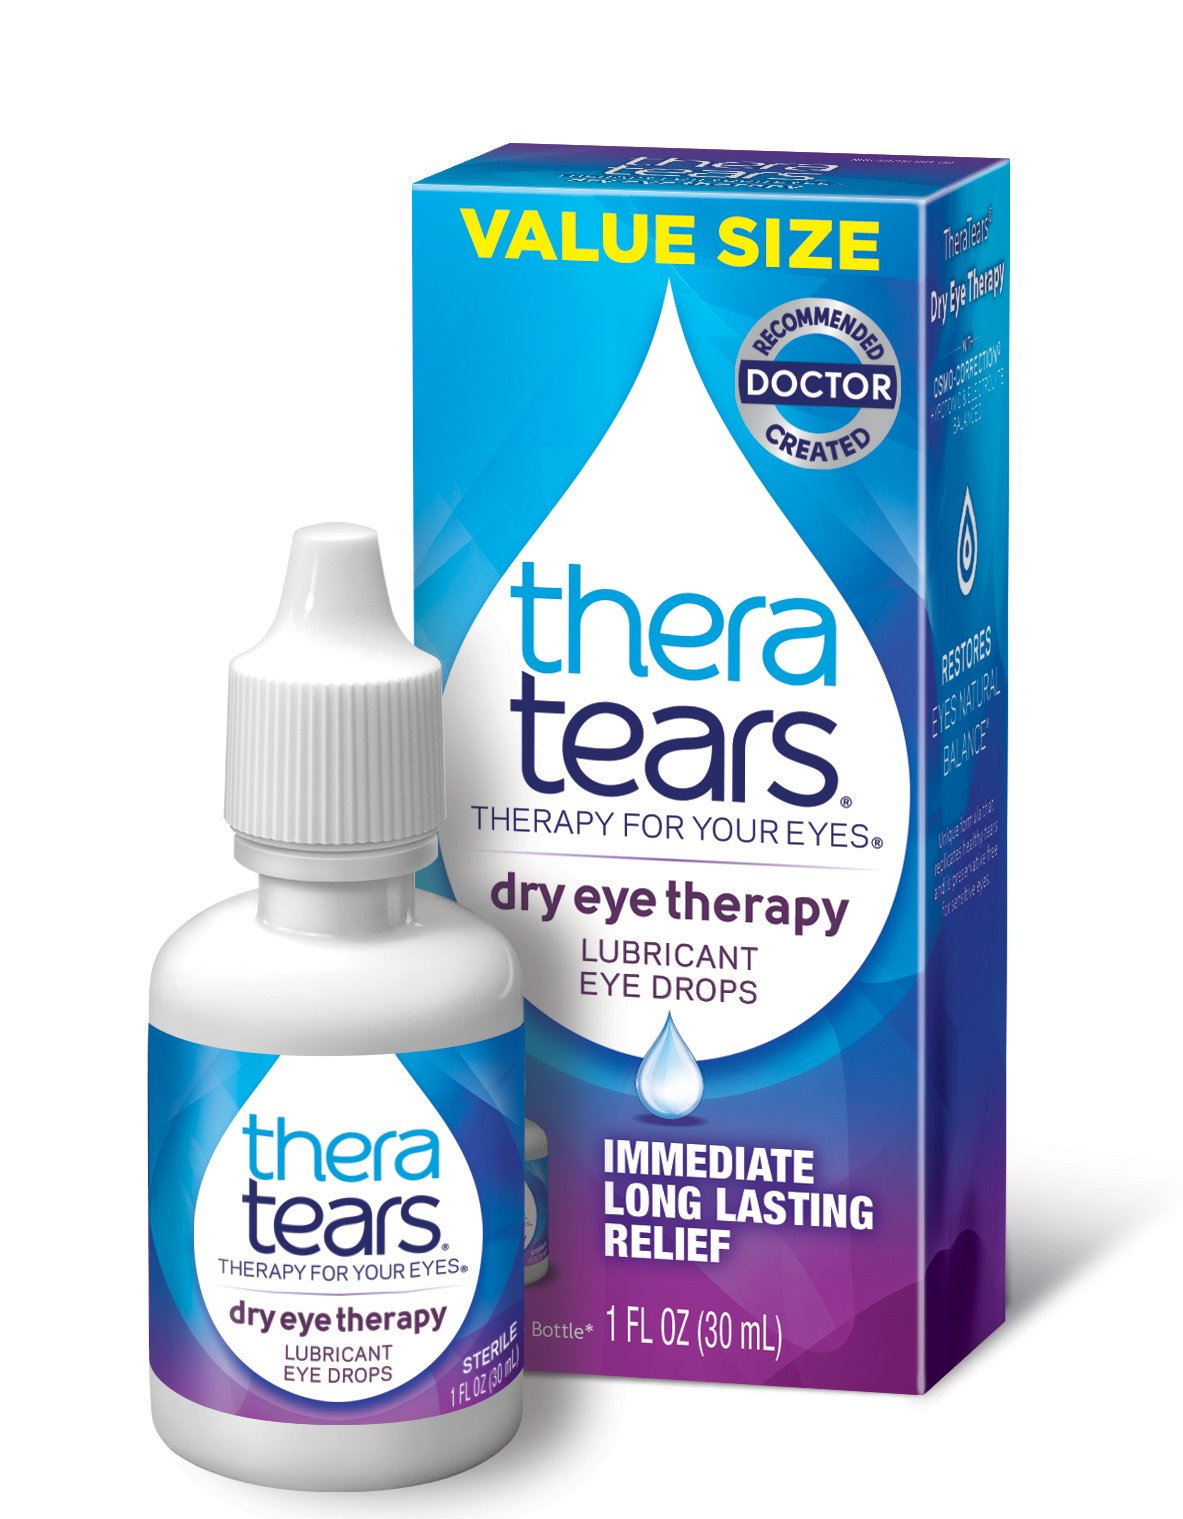 TheraTears Dry Eye Therapy- Lubricant Eye Drops- 1FL OZ(30mL)